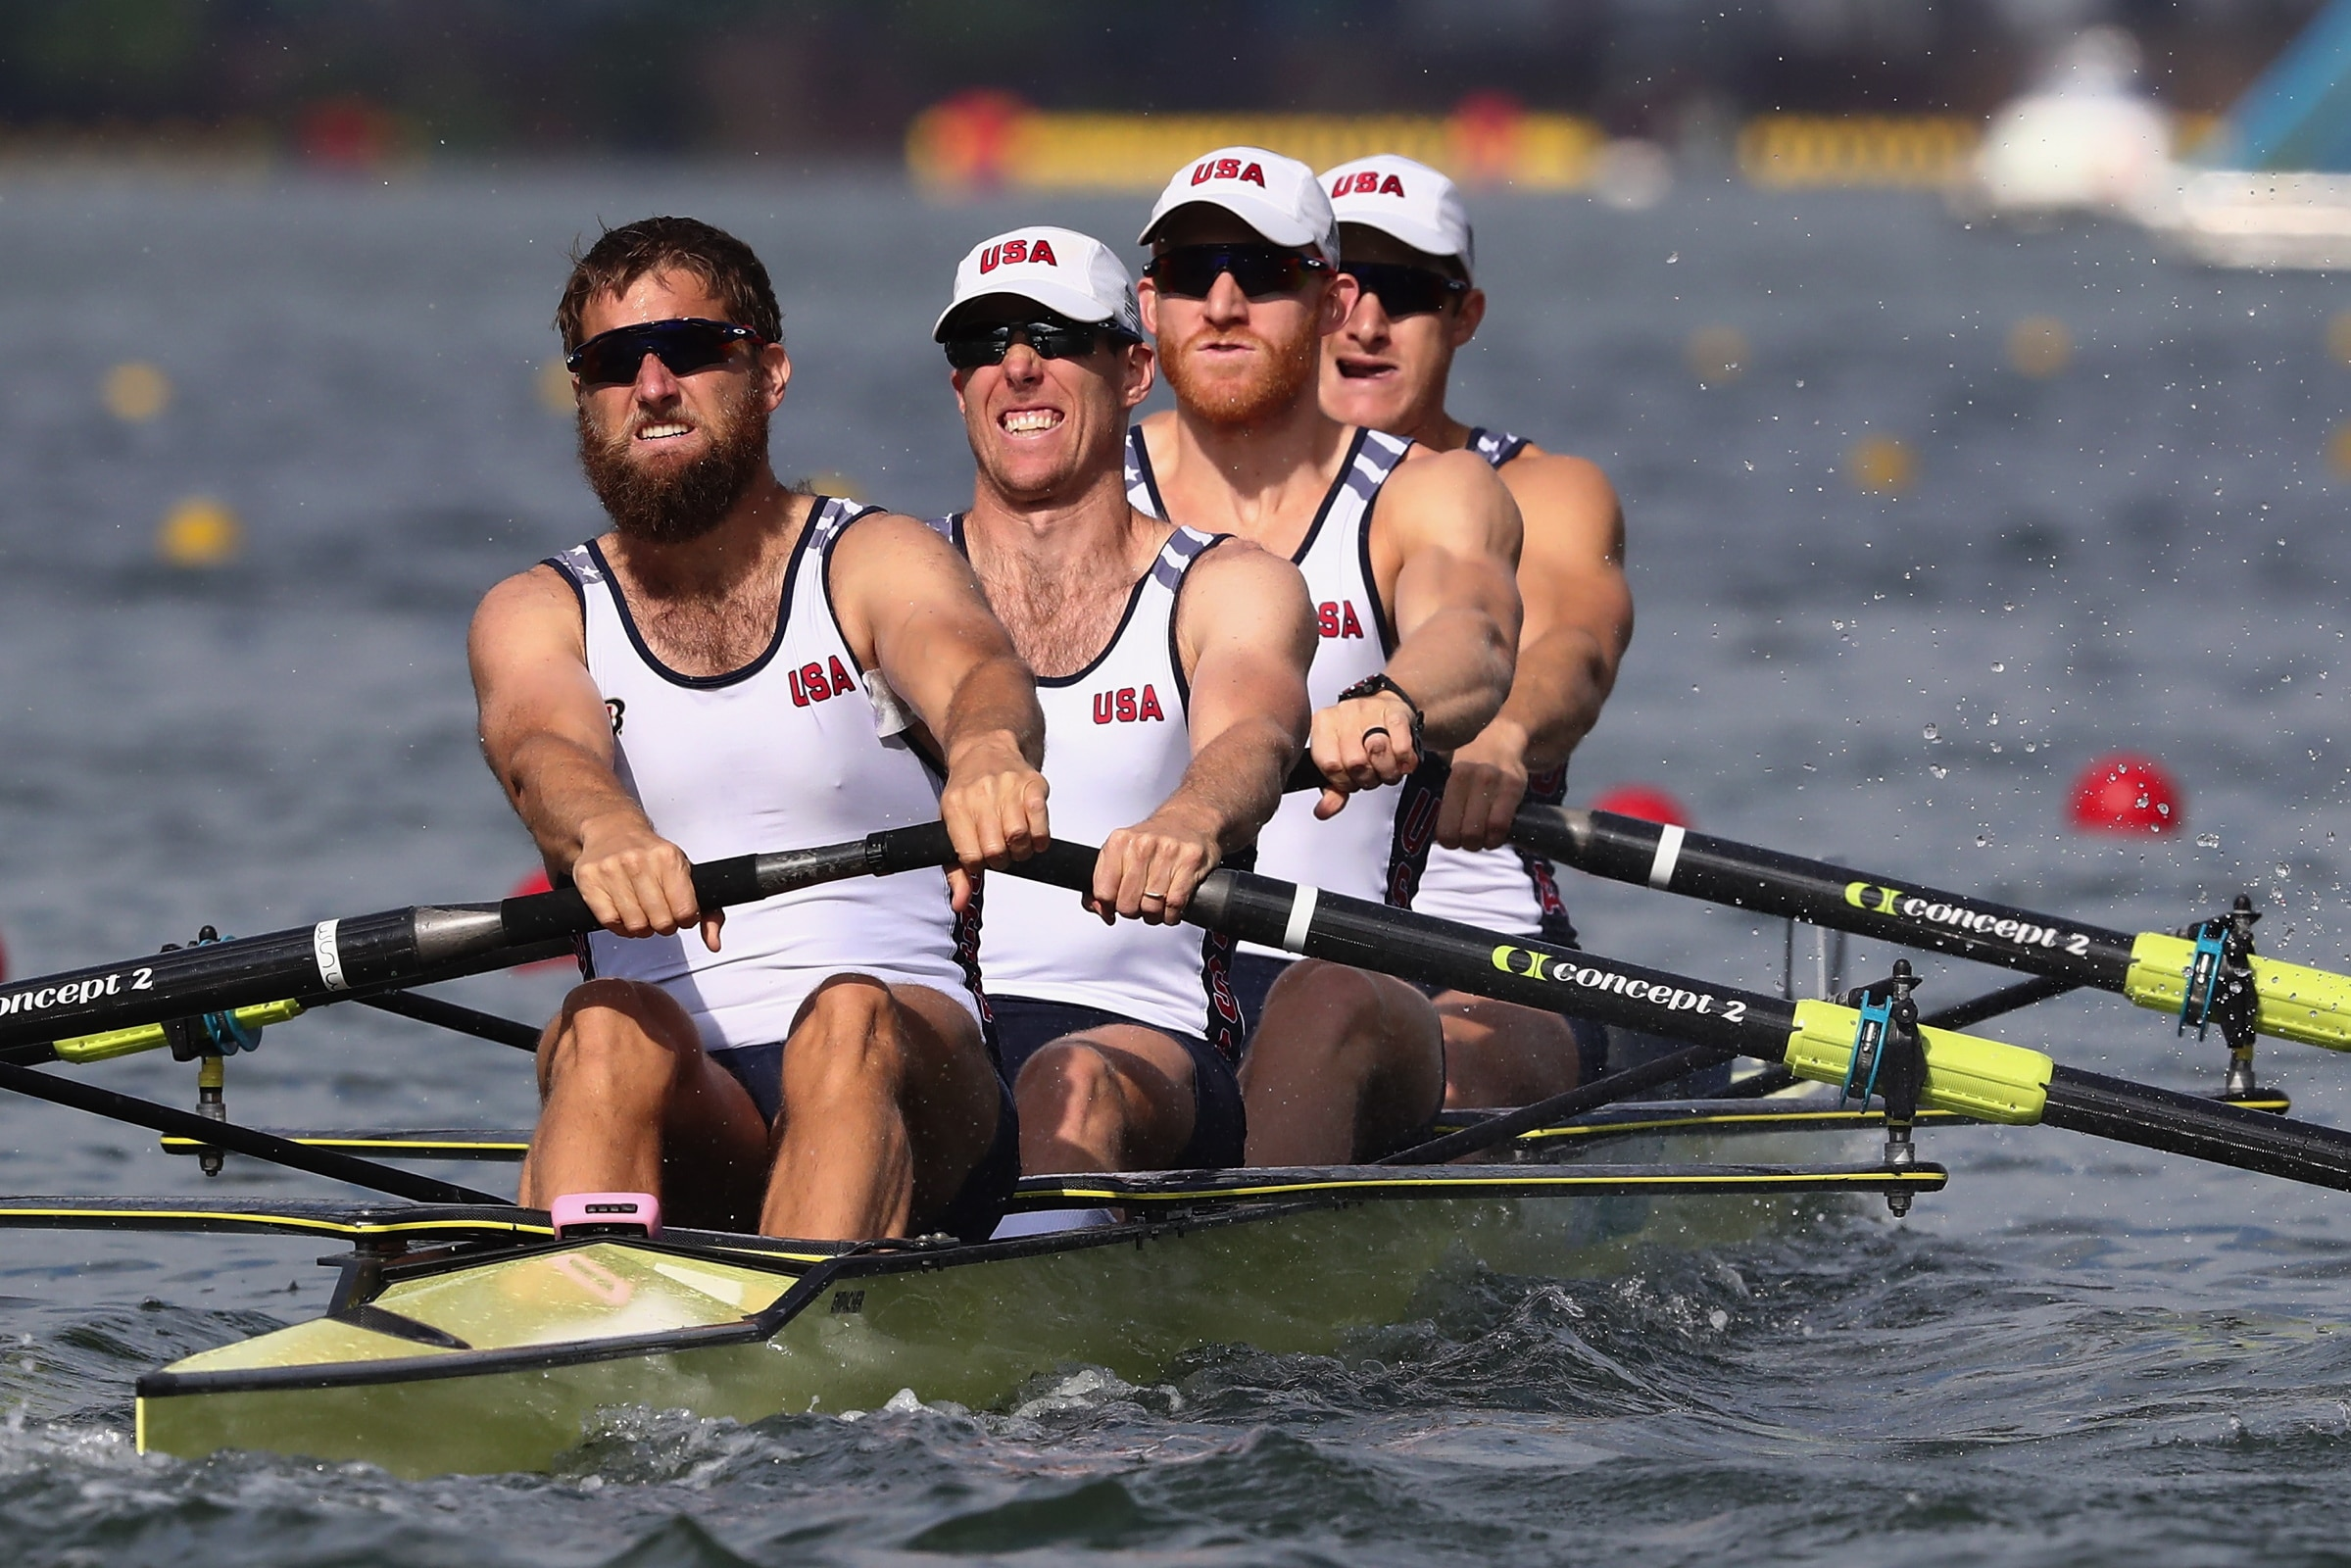 Rowing - Men's Four